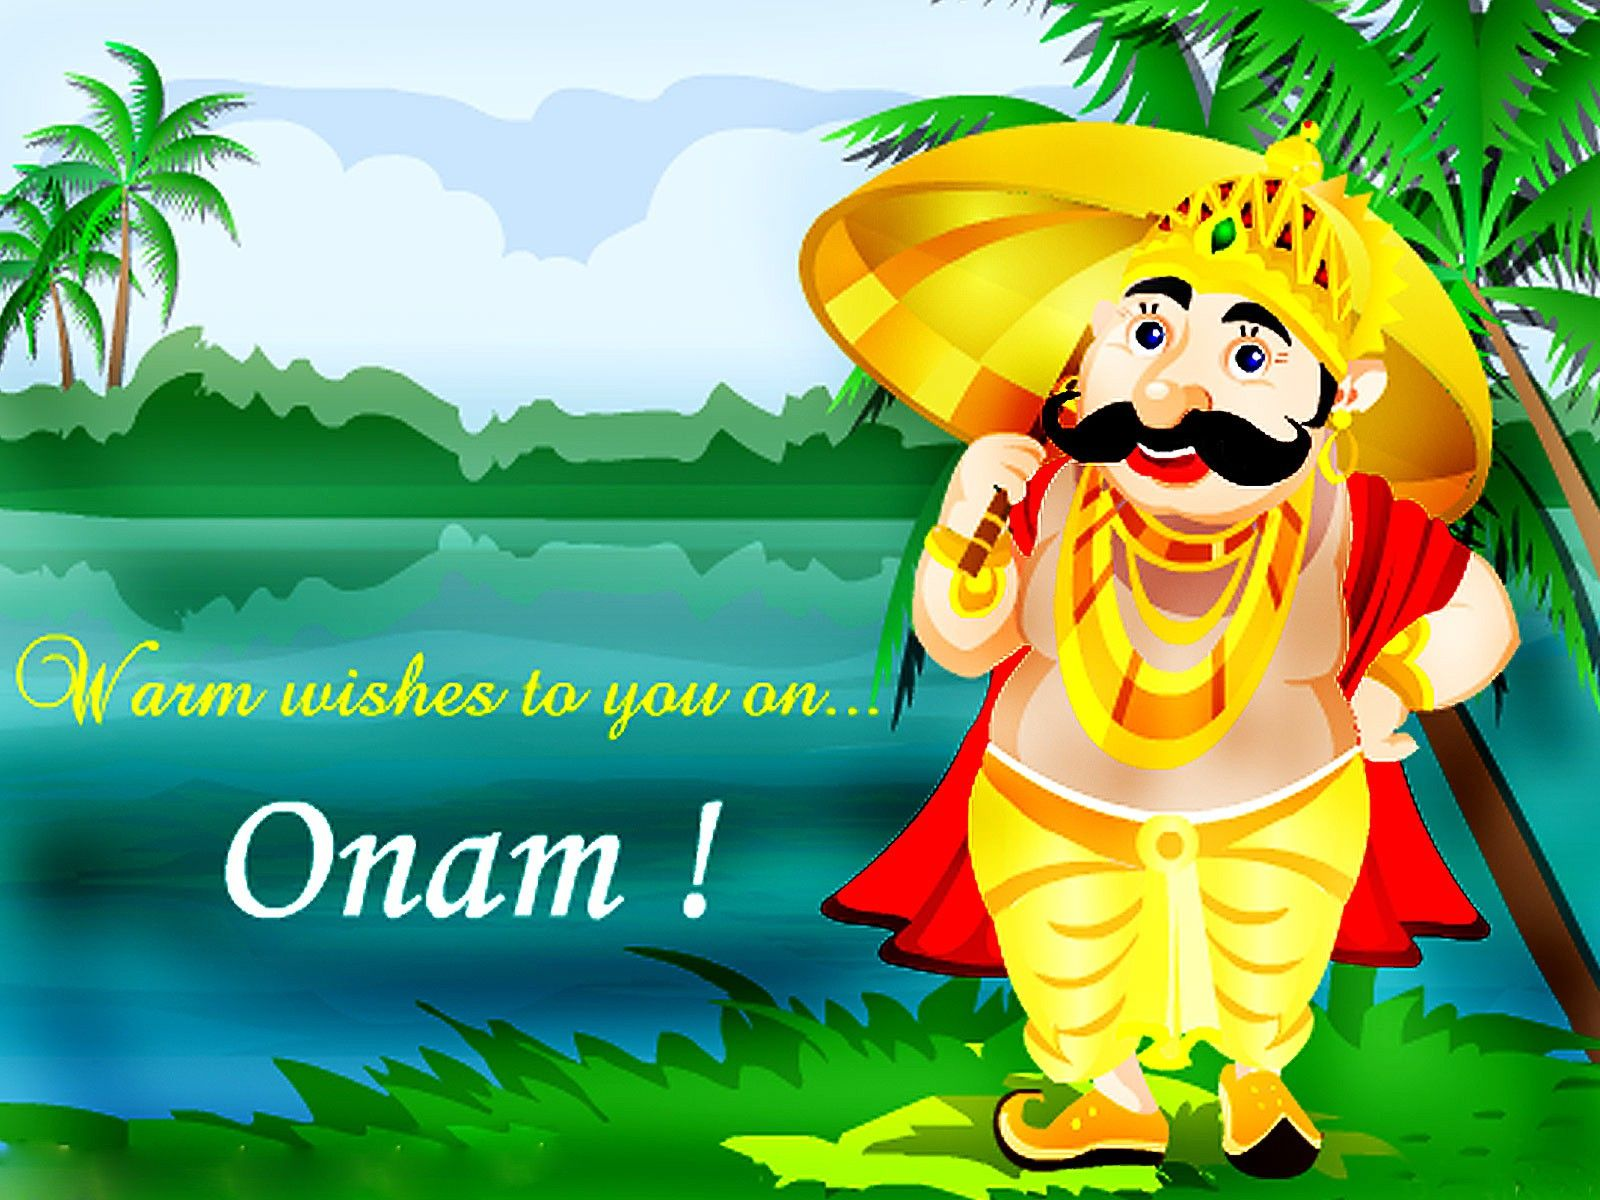 Onam wishes from partycenter onam pinterest hd images onam wishes from partycenter kristyandbryce Image collections